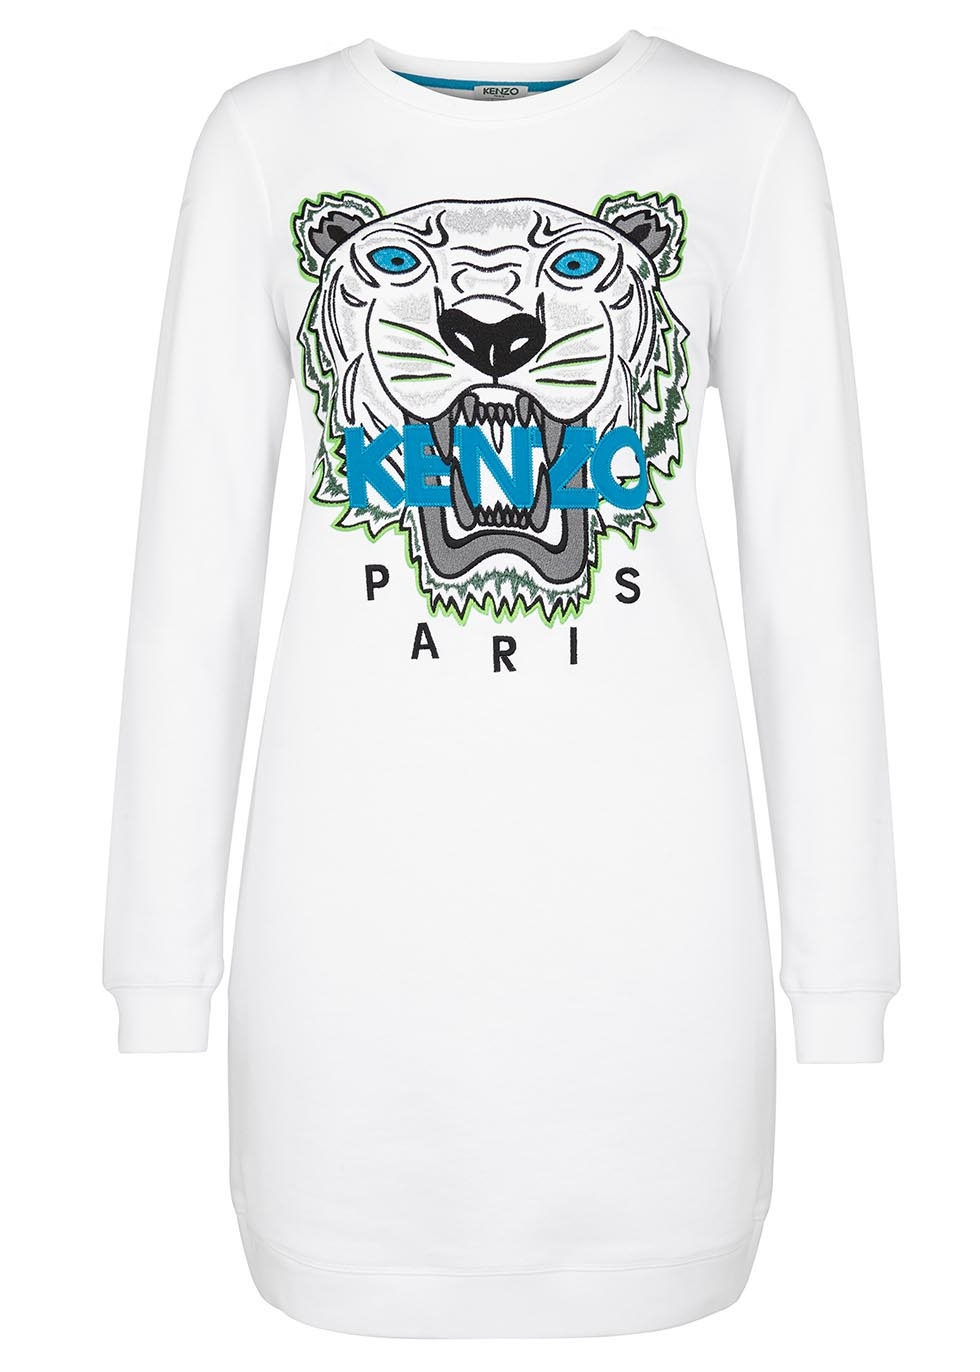 Kenzo jumper dress – was £235, now £94